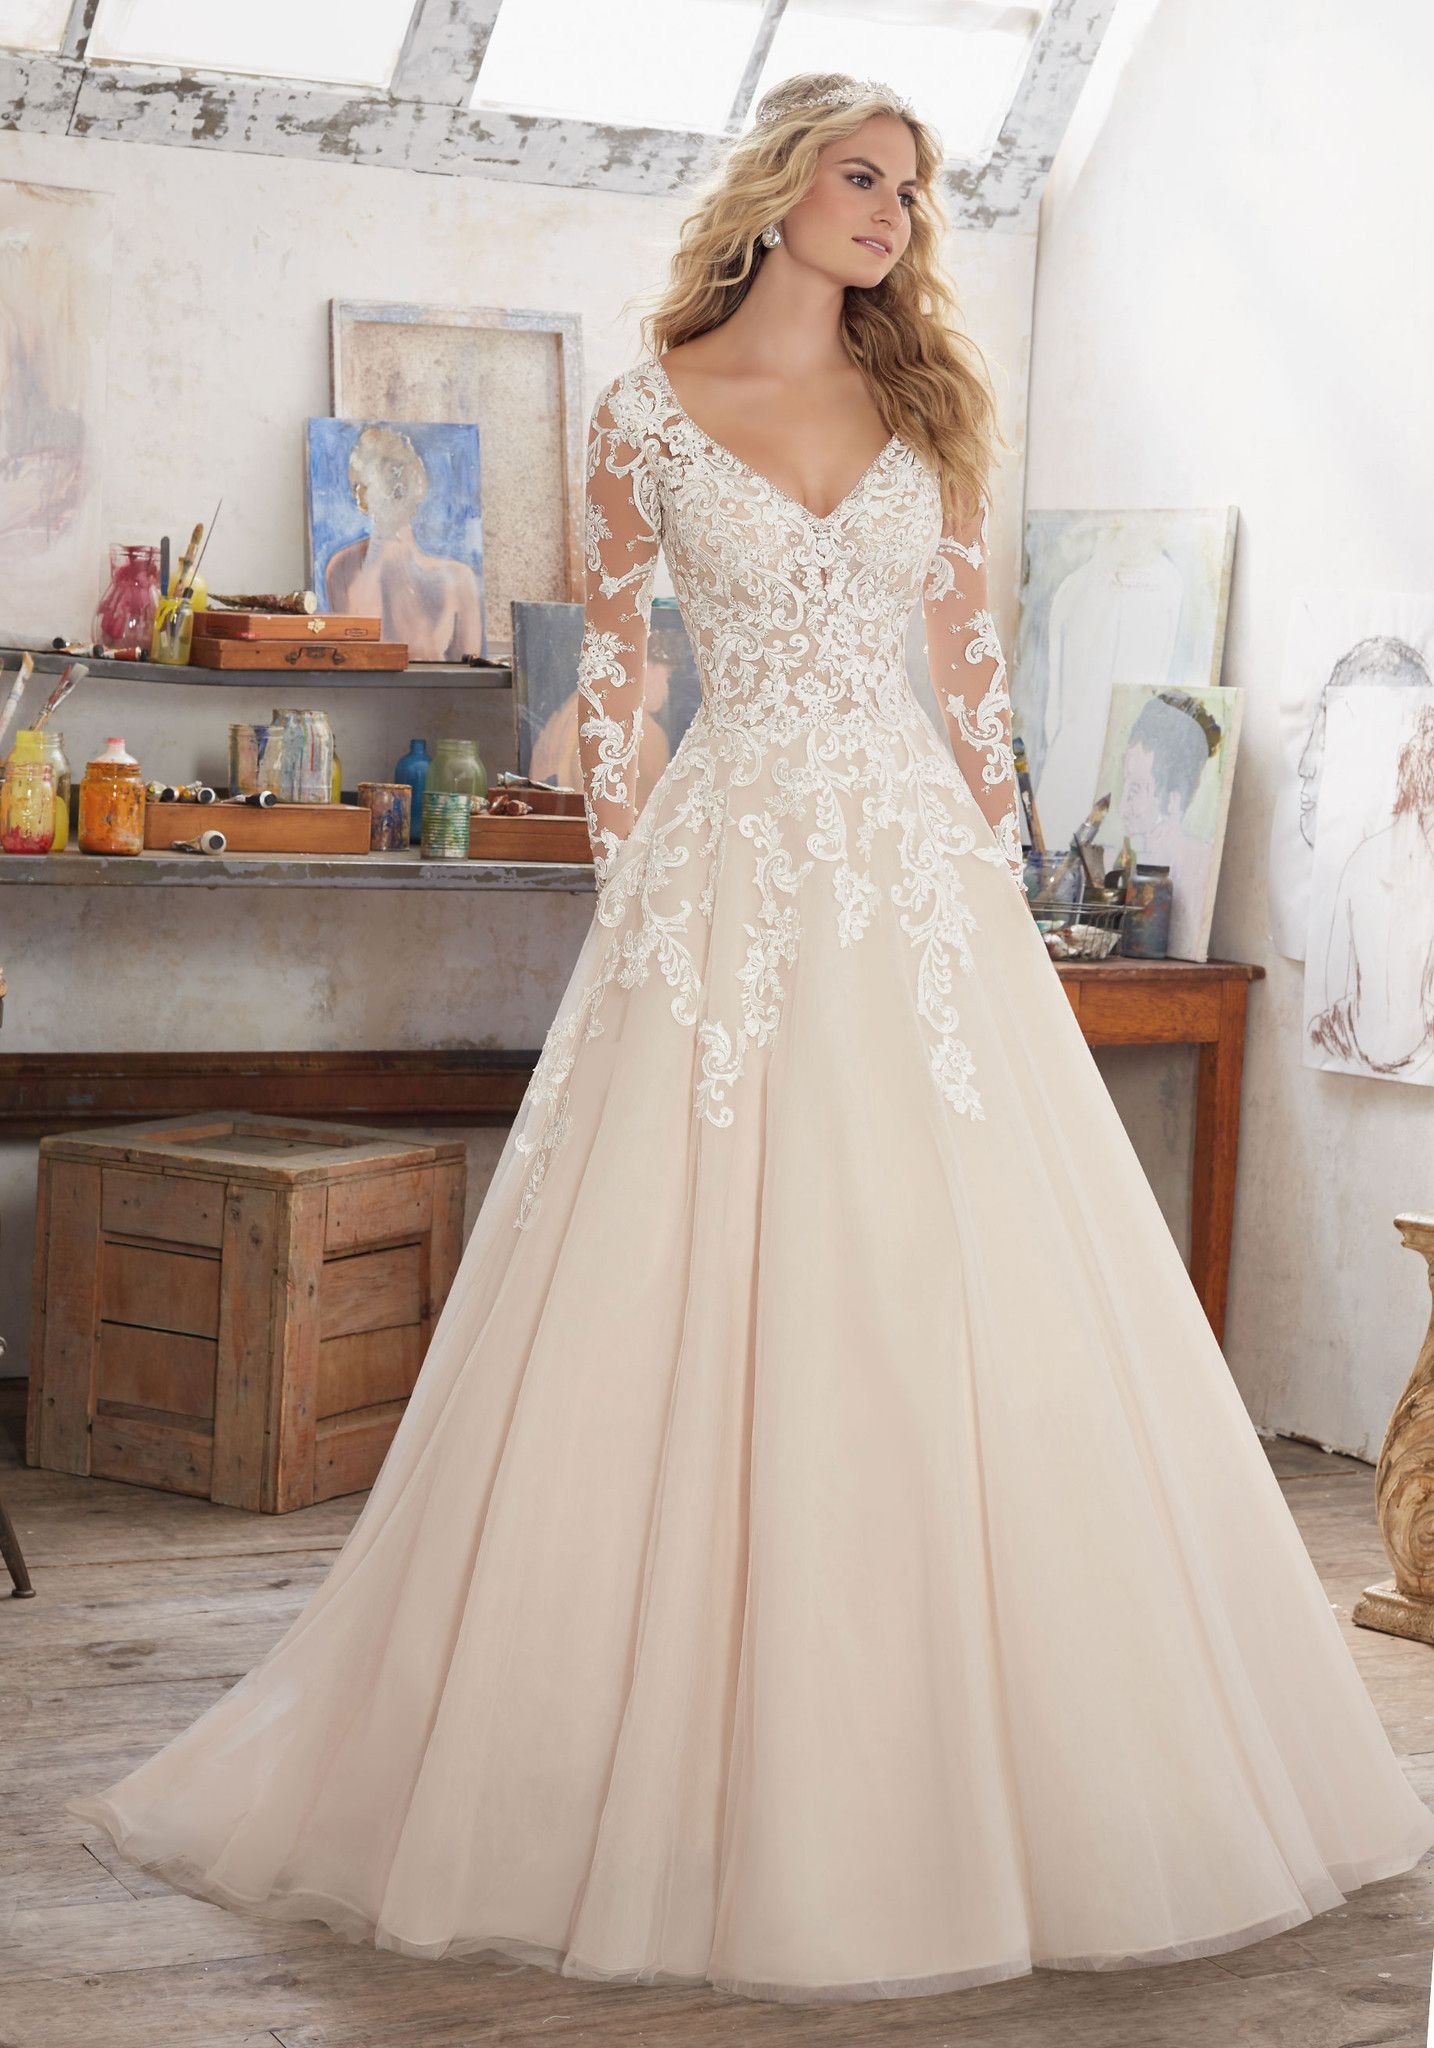 Morilee maira all dressed up bridal gown in